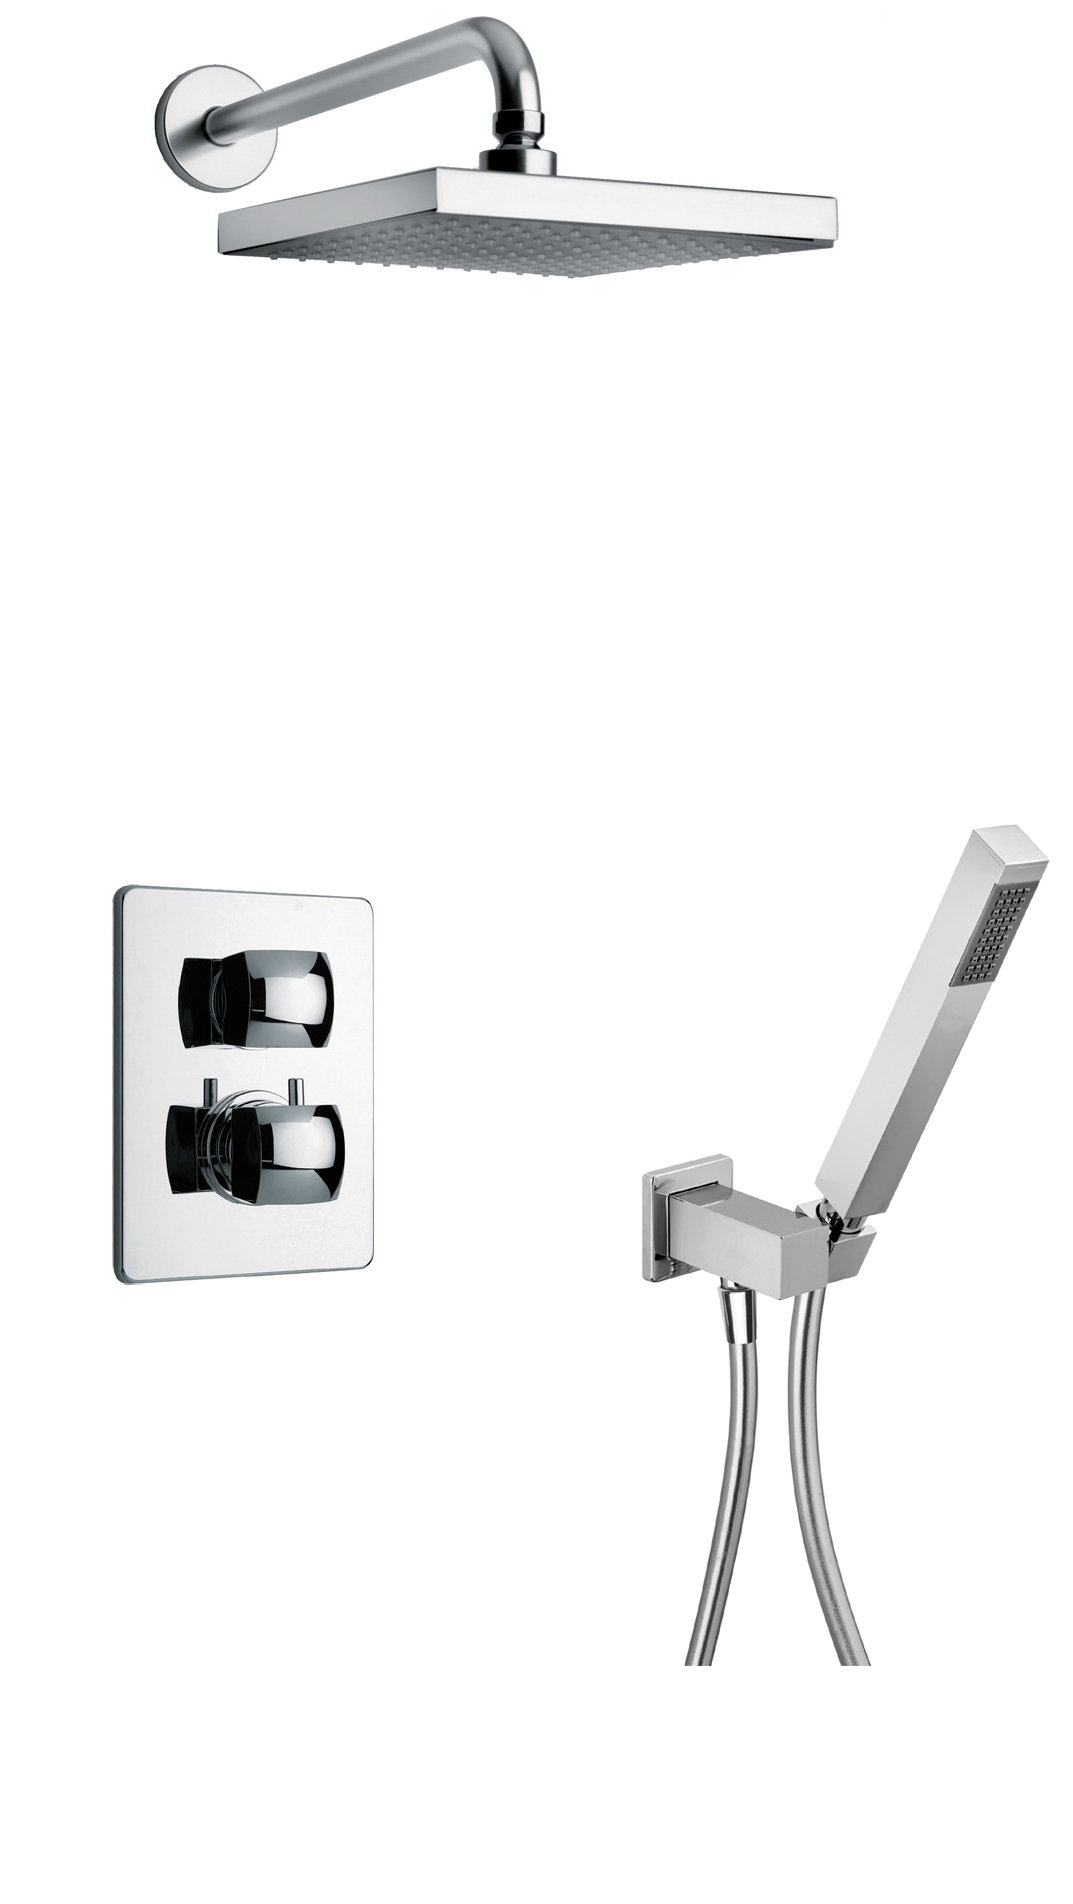 Thermostatic Shower With 2-Way Diverter Volume Control and Hand-Shower in Chrome